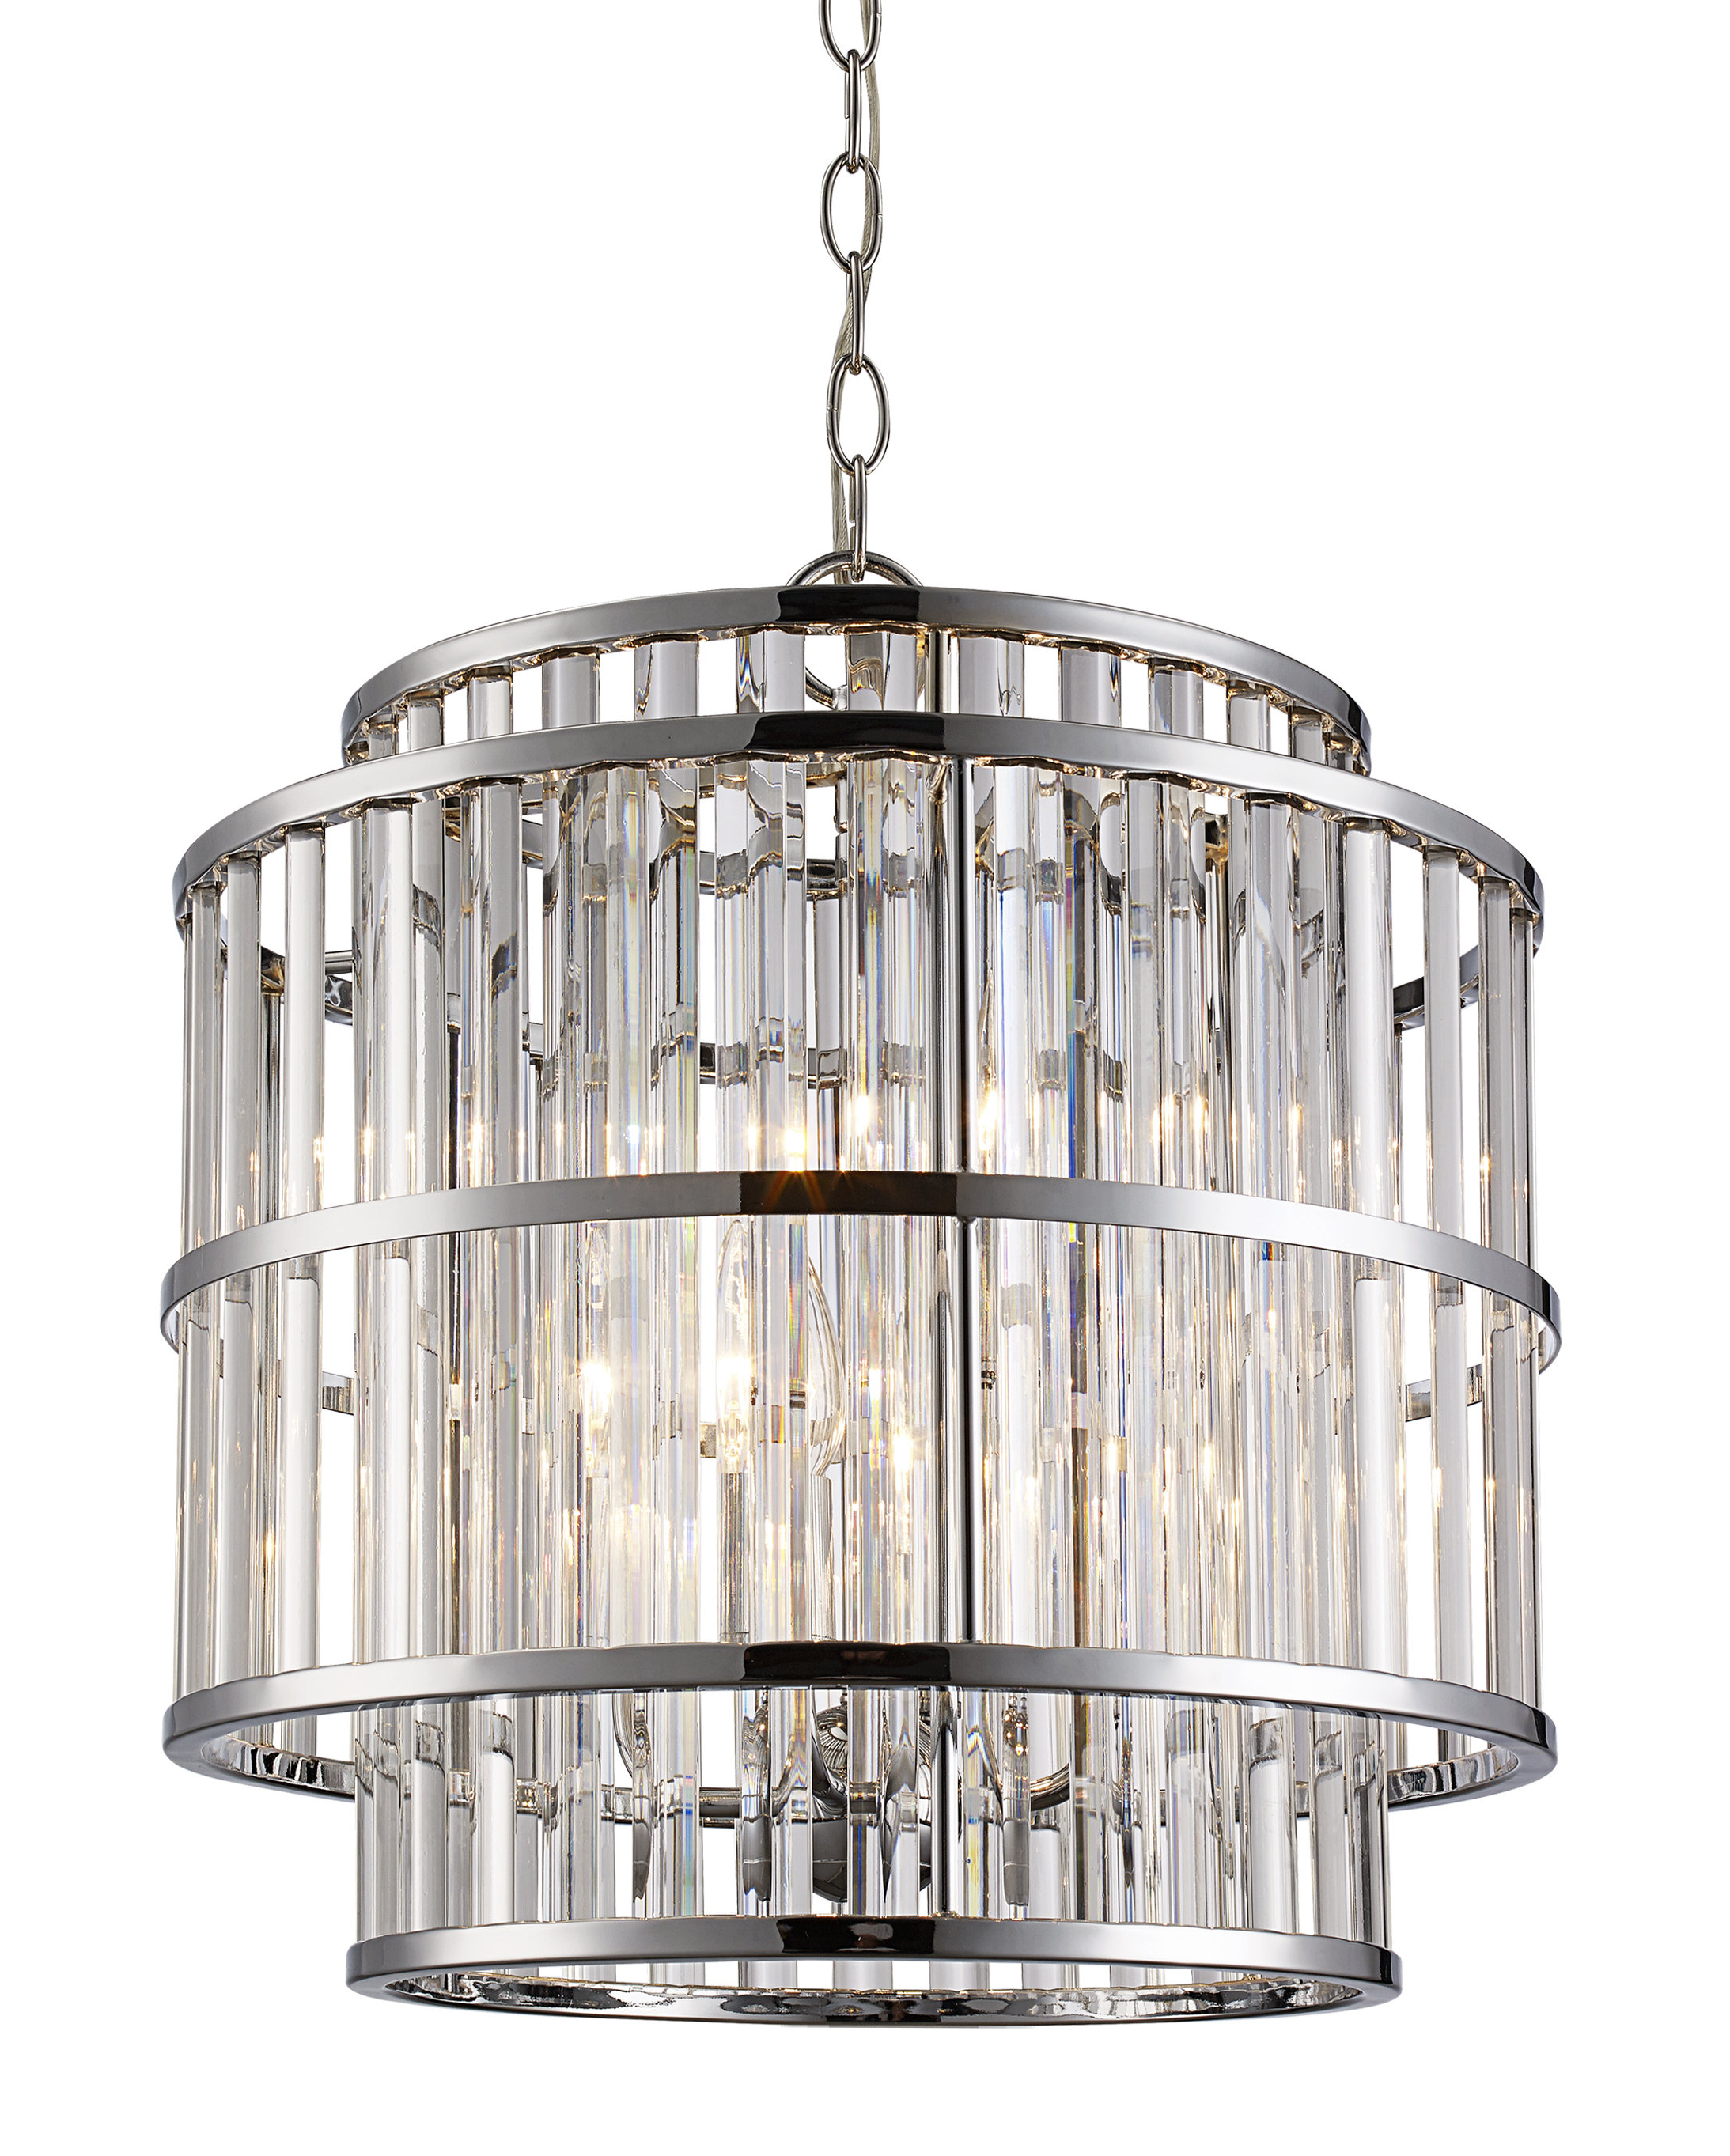 Widely Used Dailey 4 Light Drum Chandeliers Intended For Beeston 4 Light Drum Chandelier (View 6 of 20)